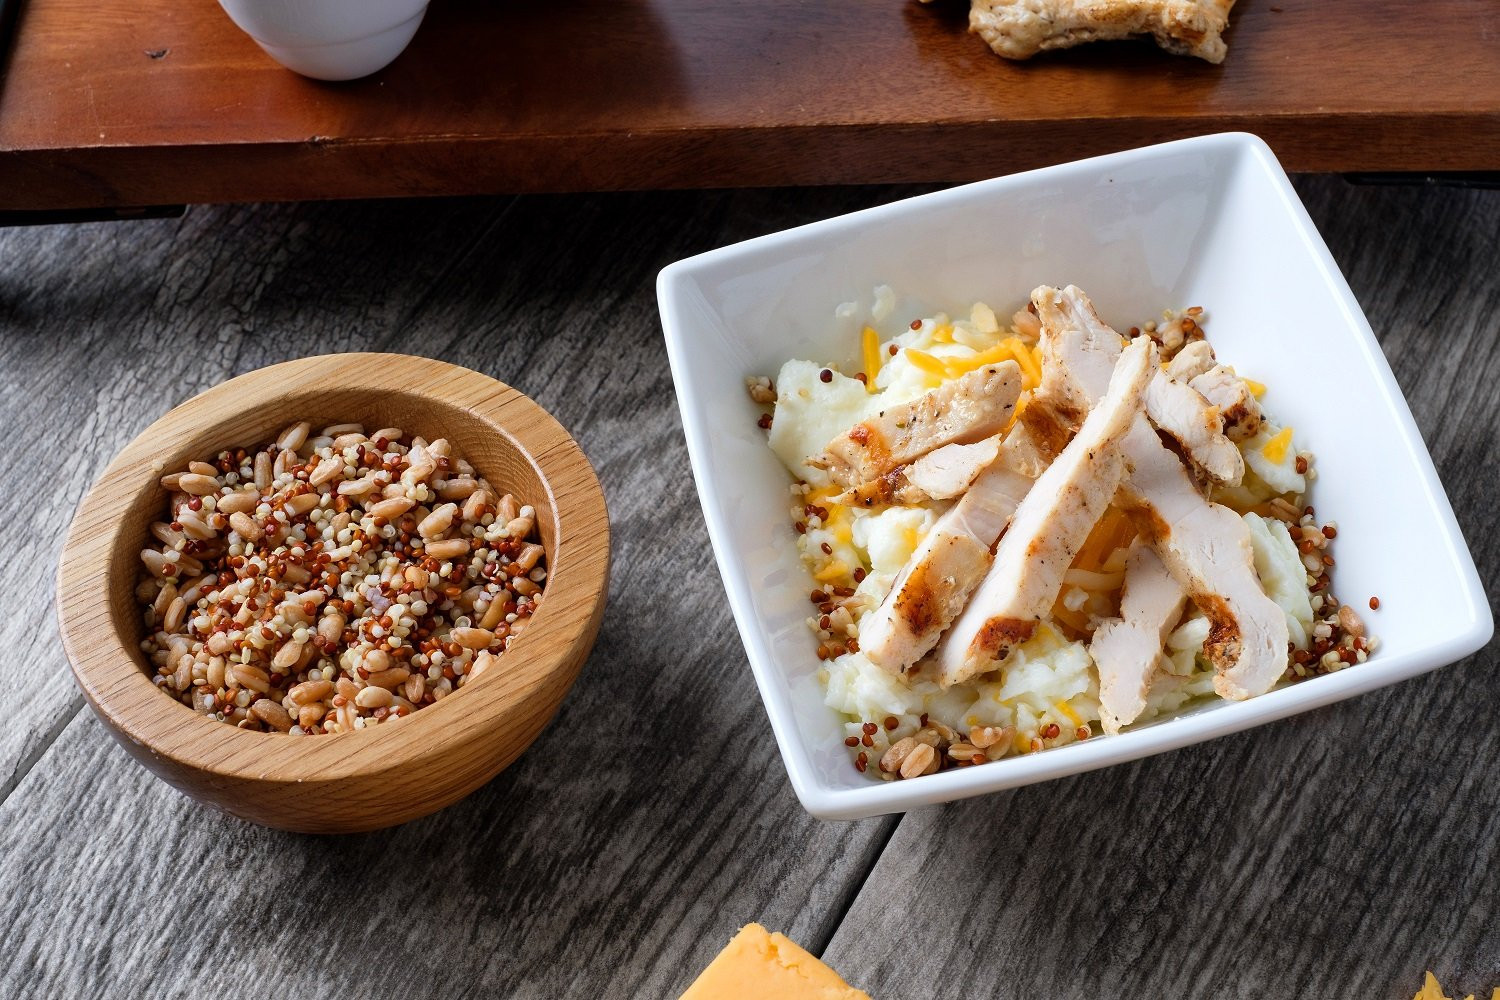 Healthy Chick Fil A Breakfast  Chick fil A adds new healthy grain bowls Business Insider